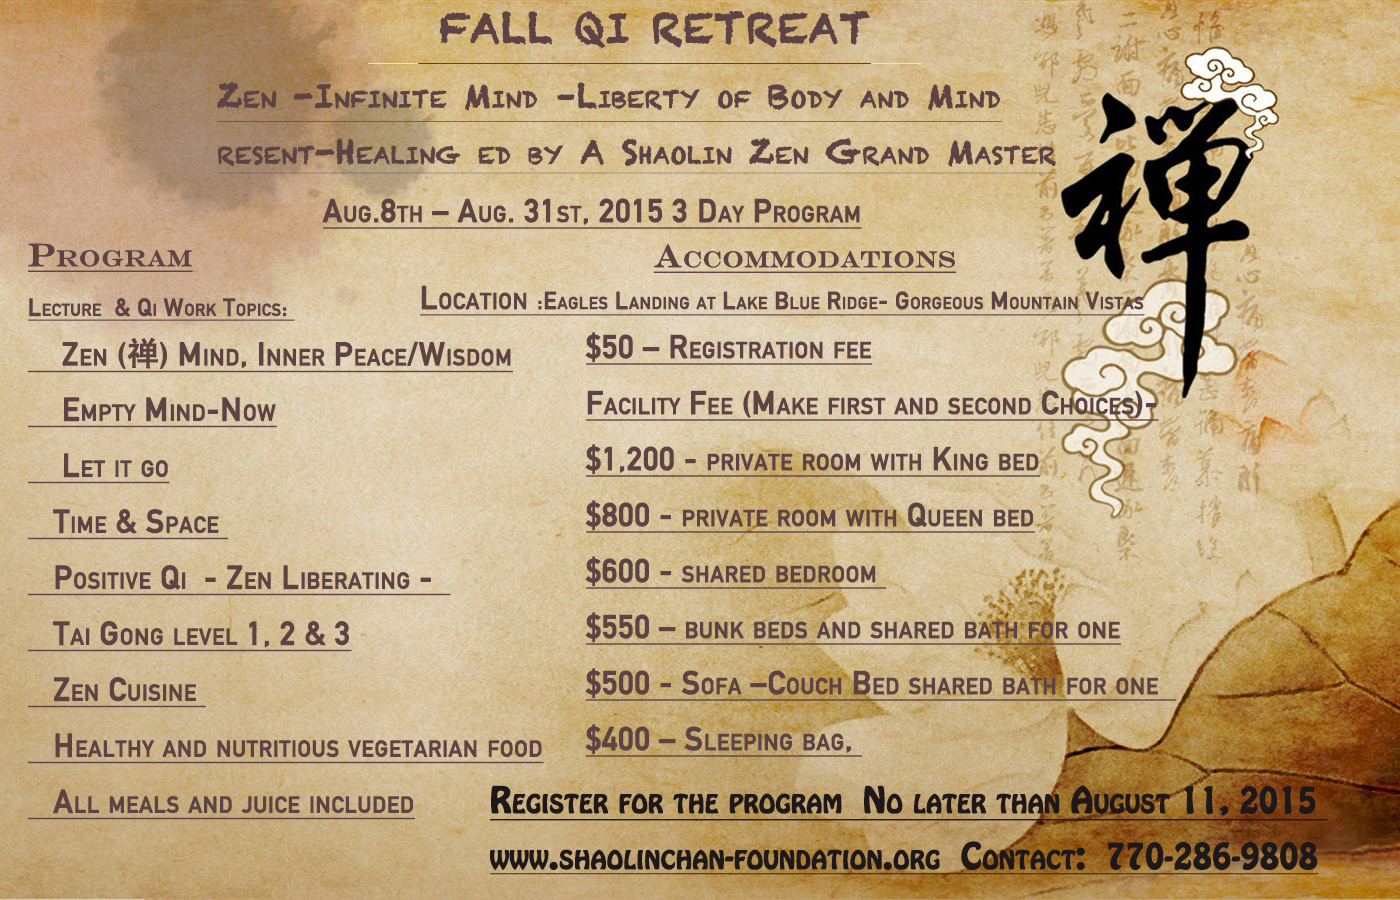 fall qi retreat 2015